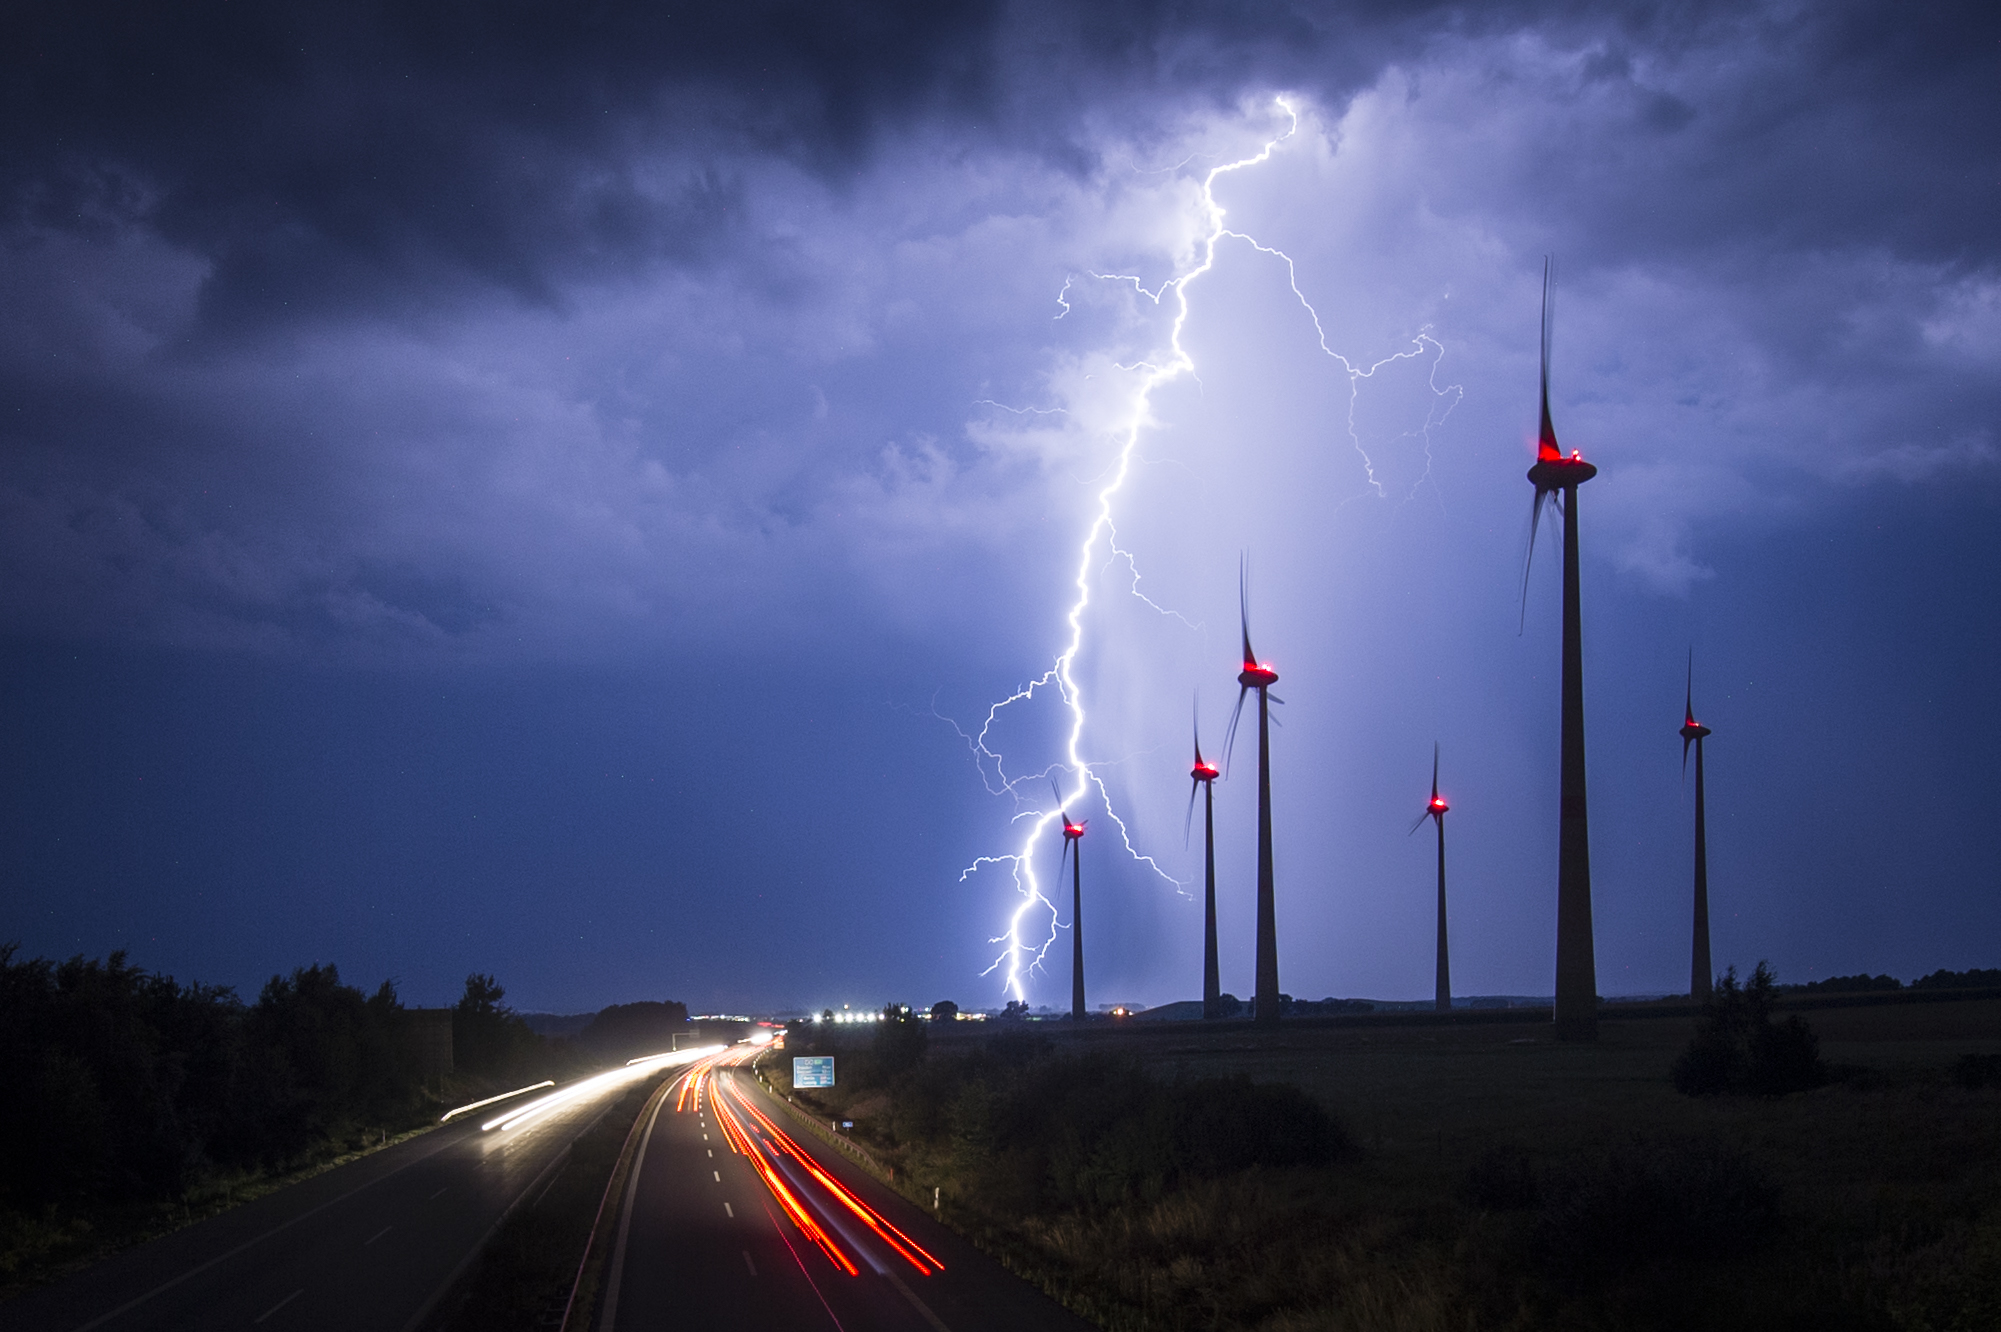 Слайд 78 из 86: GOERLITZ, GERMANY - AUGUST 28: Lightning strikes behind wind turbines during a thunderstorm near the border between Germany and Poland on August 28, 2016 in Goerlitz, Germany. After a hot weekend across Germany, the weather is cooling down. (Photo by Flo